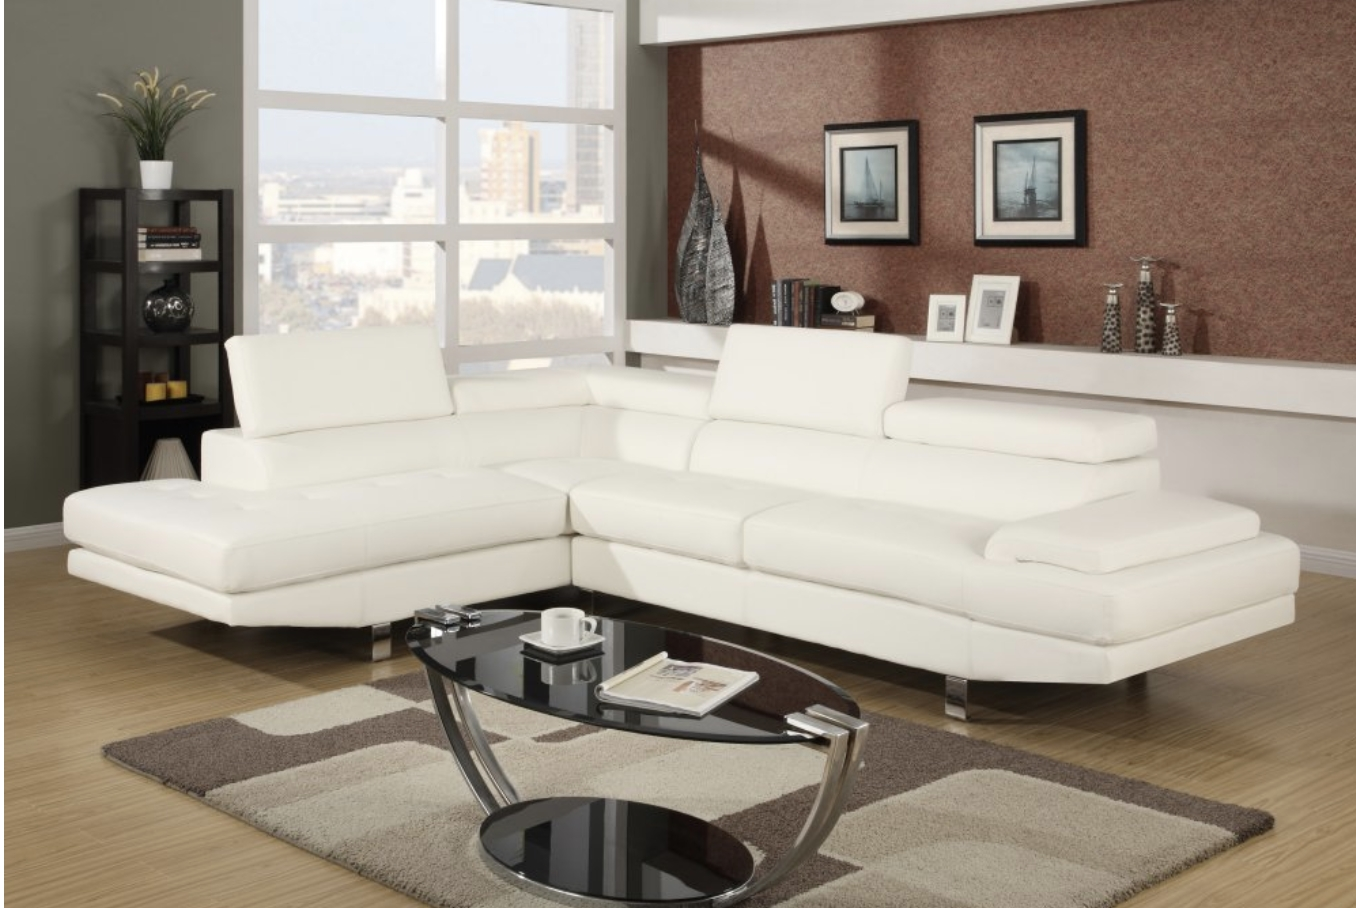 Newest 80X80 Sectional Sofas Pertaining To 75 Modern Sectional Sofas For Small Spaces (2018) (View 15 of 15)